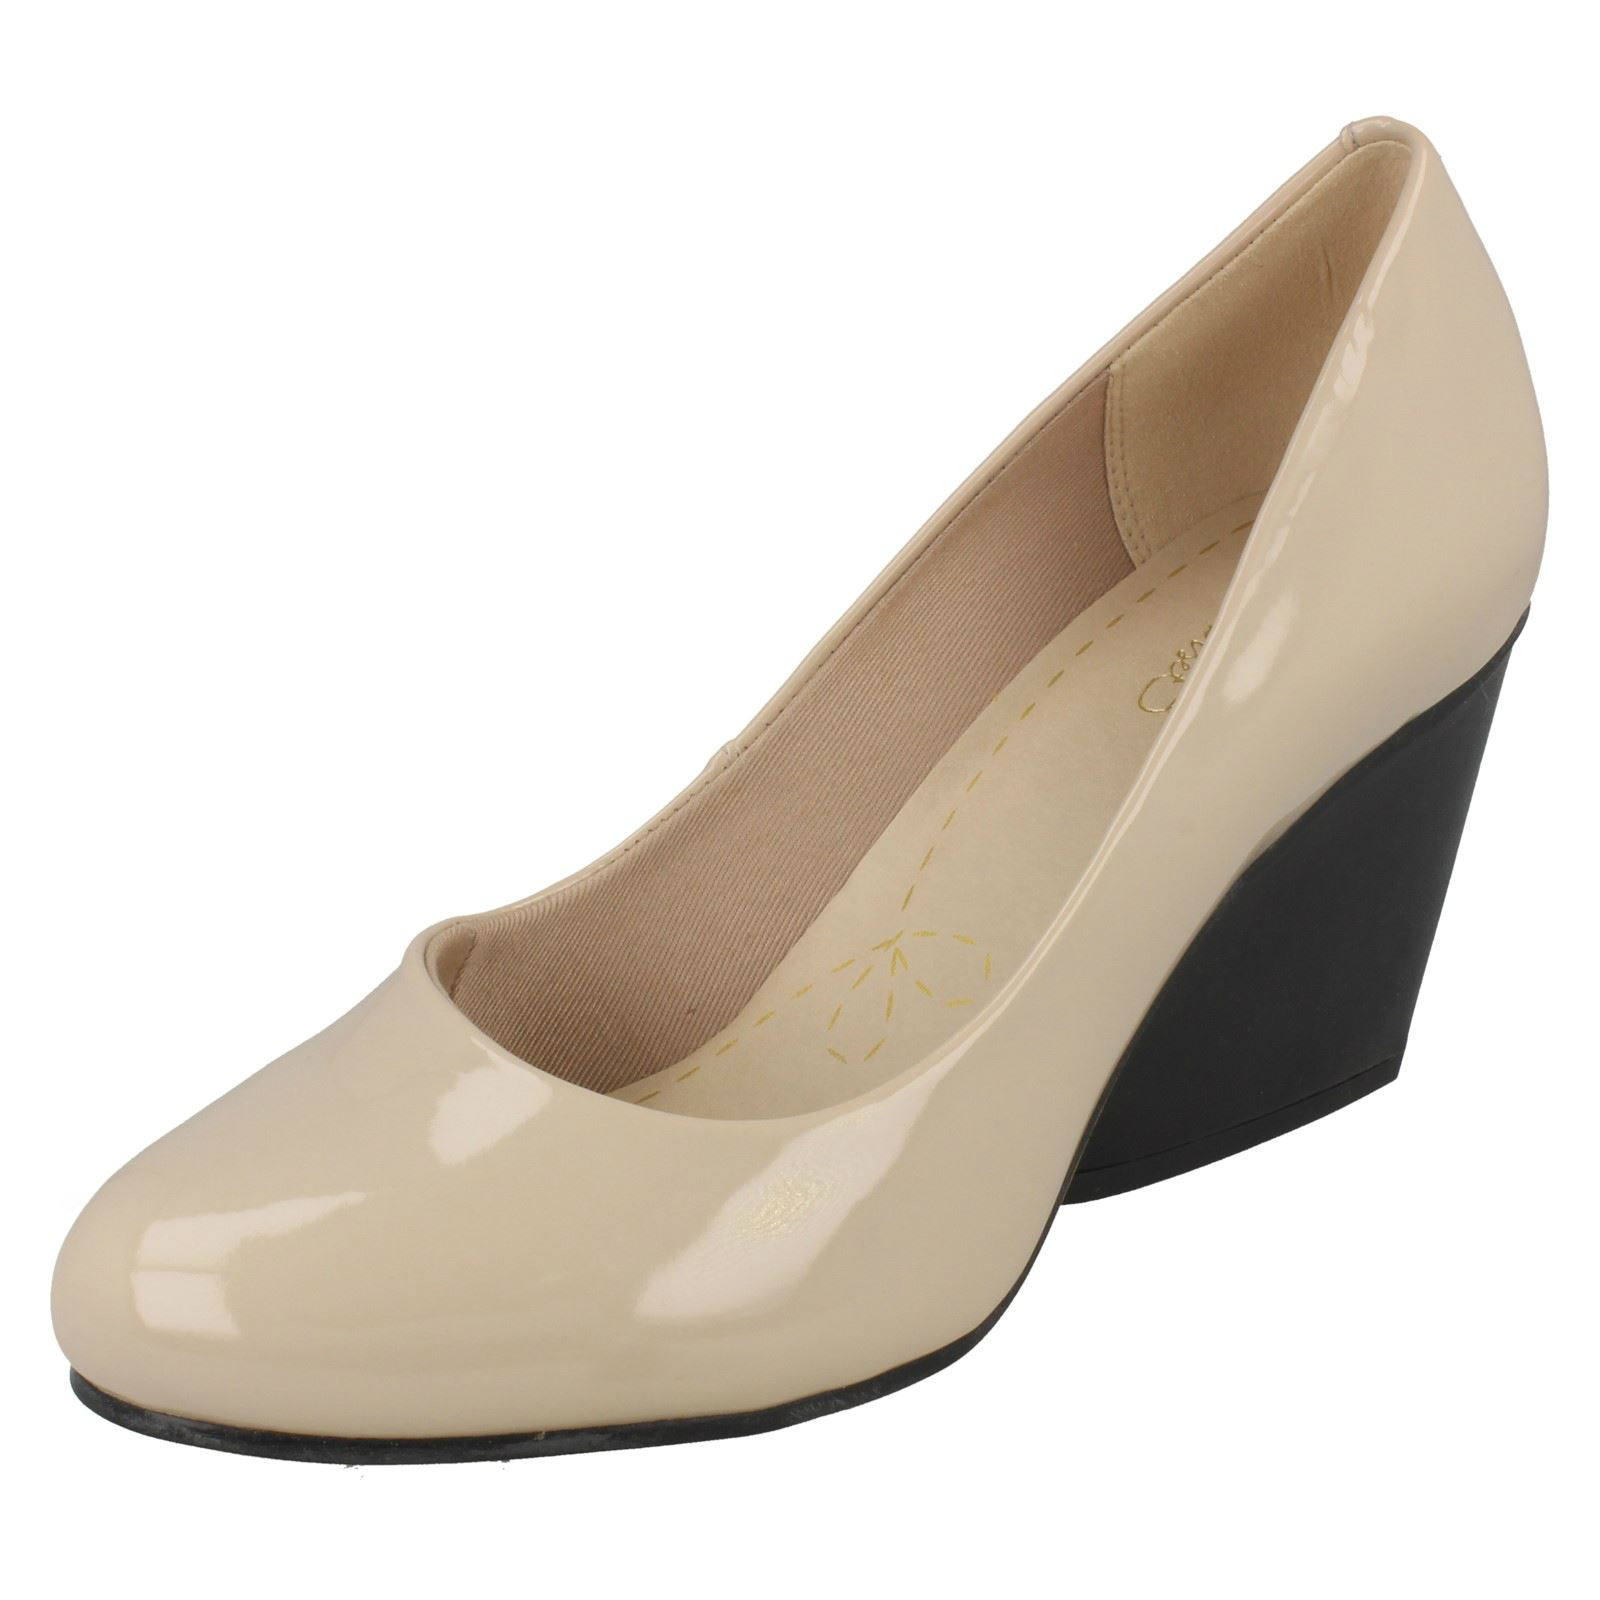 Ladies Clarks Demerara Spice Smart Wedge shoes